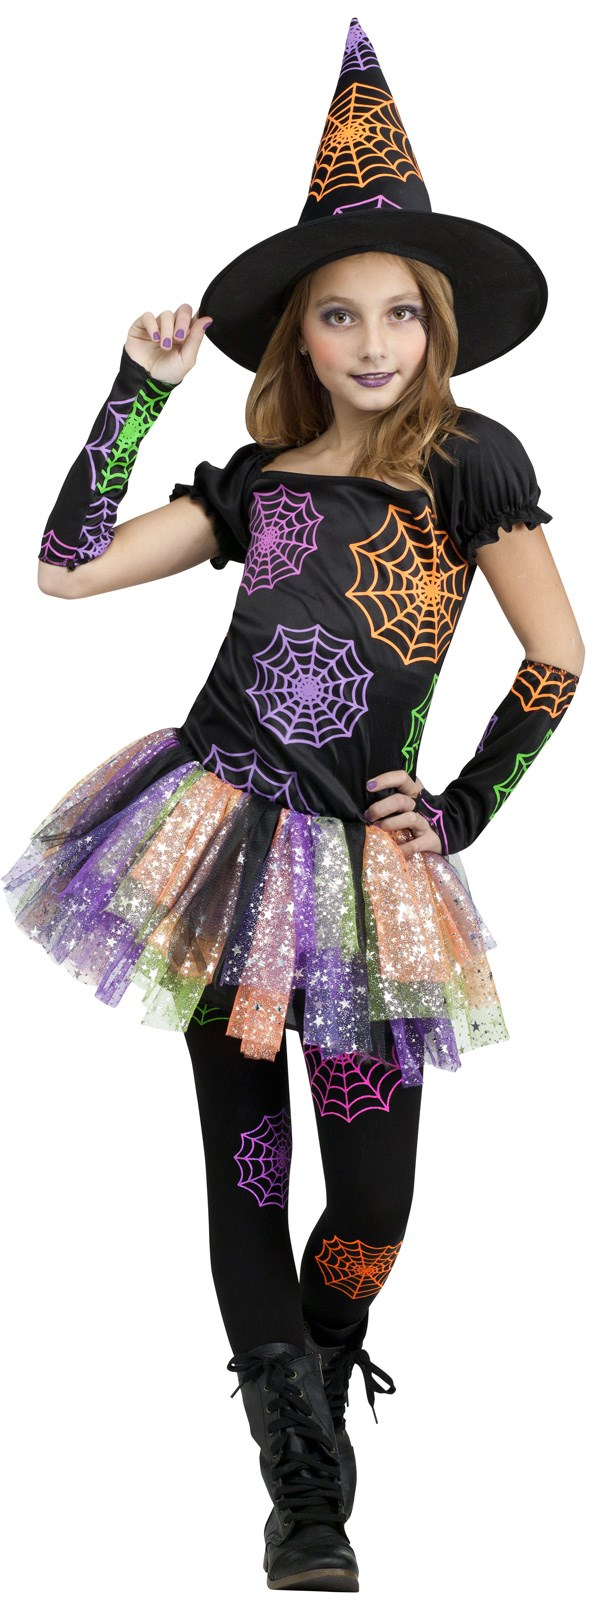 Wild Witch Girls Costume Small (4-6)